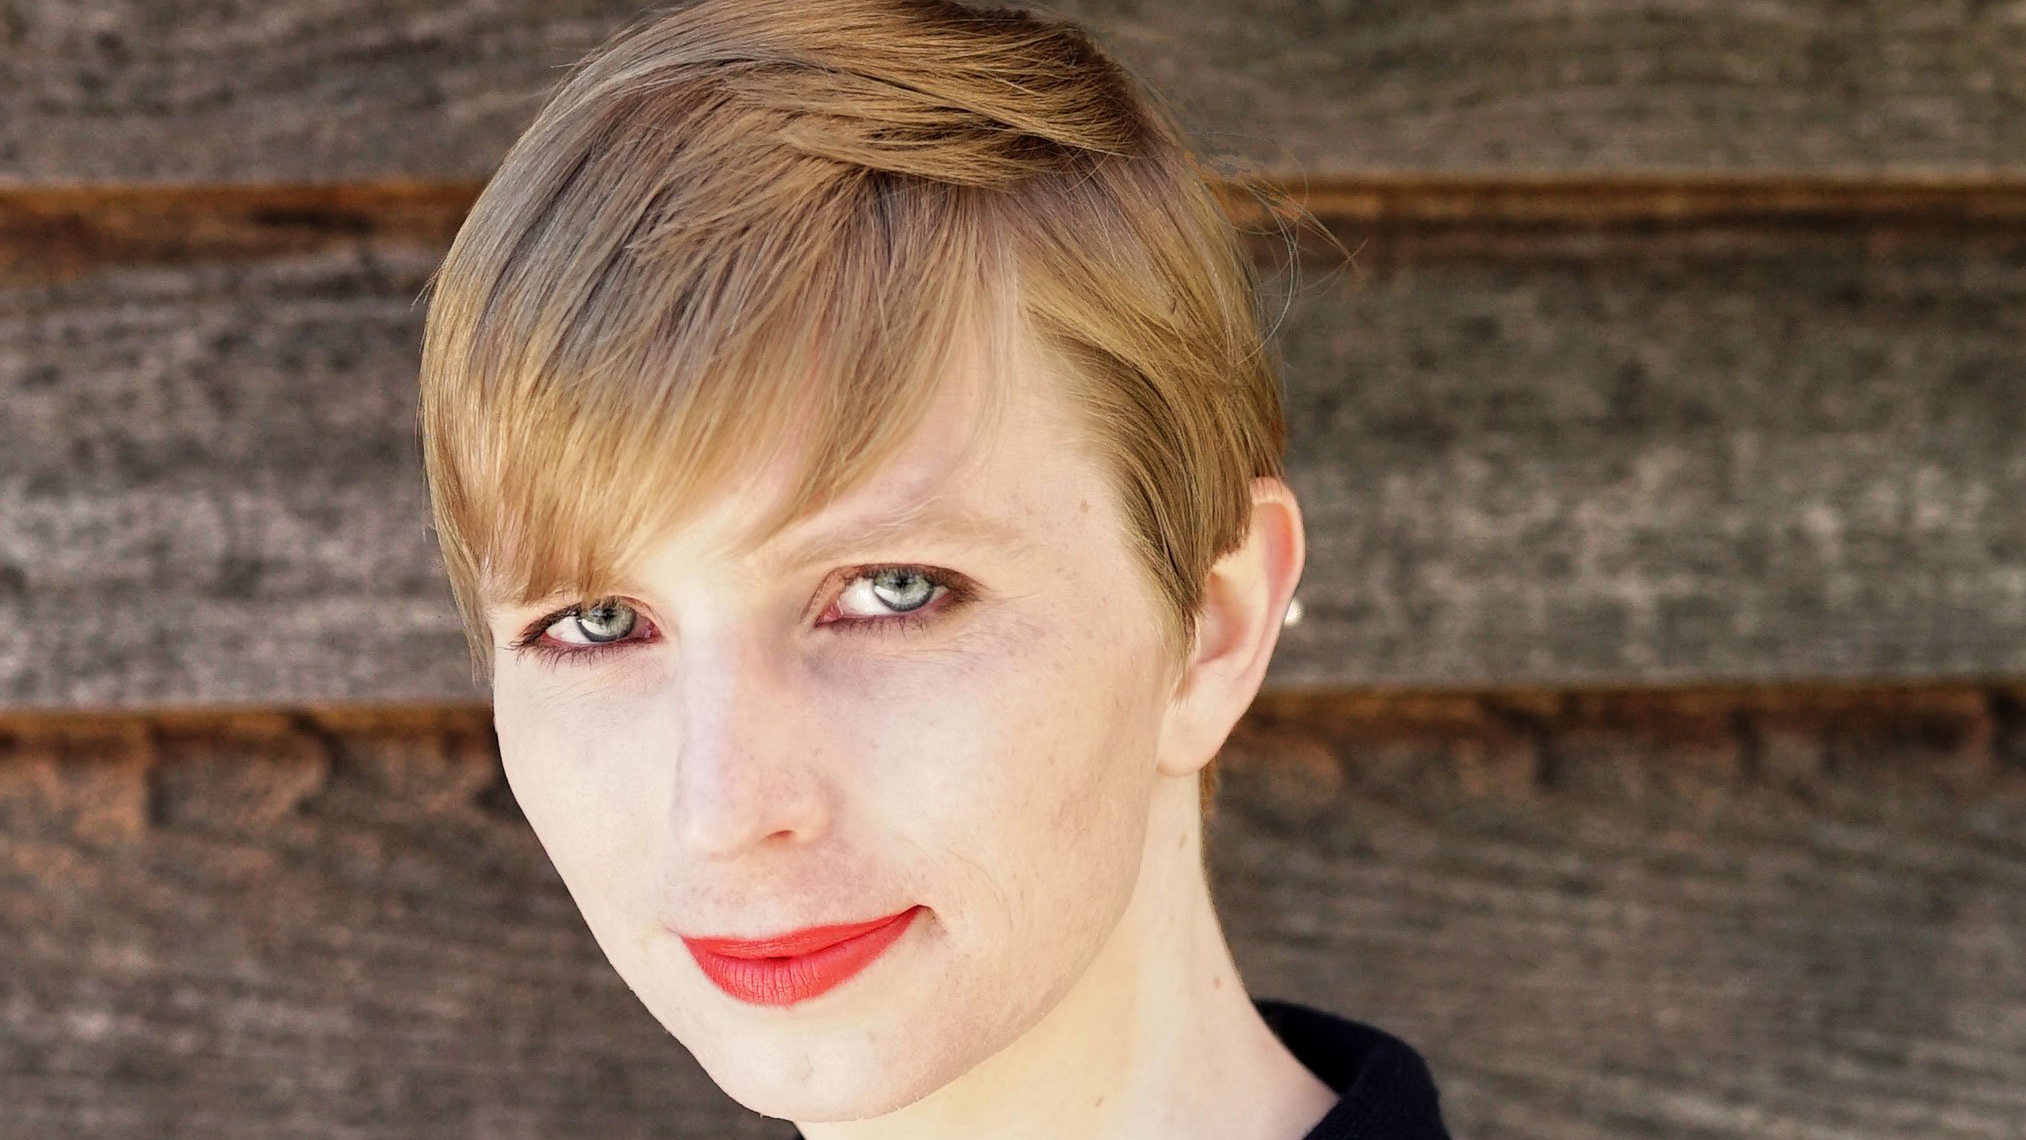 Chelsea Manning pictured in a photograph published to her Twitter account on May 18.